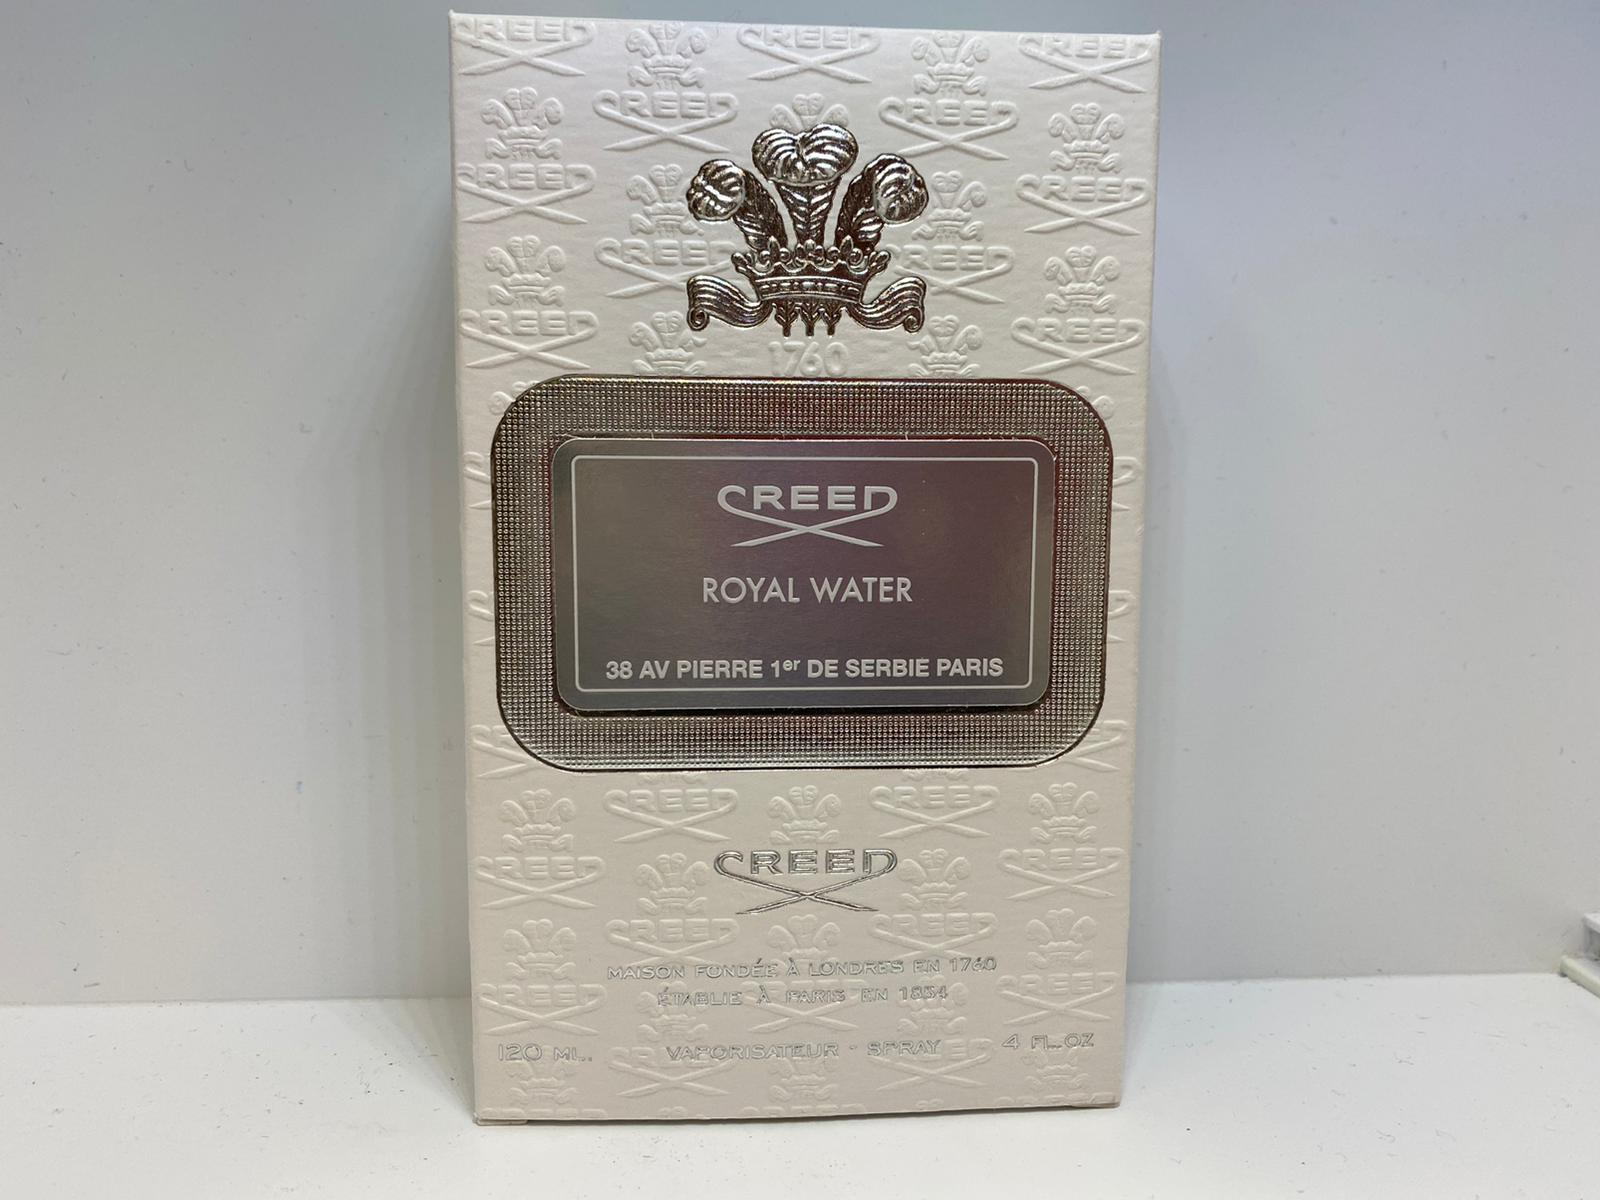 Creed Royal Water 120ml 4 FL OZ CURBSIDE PICKUP ONLY